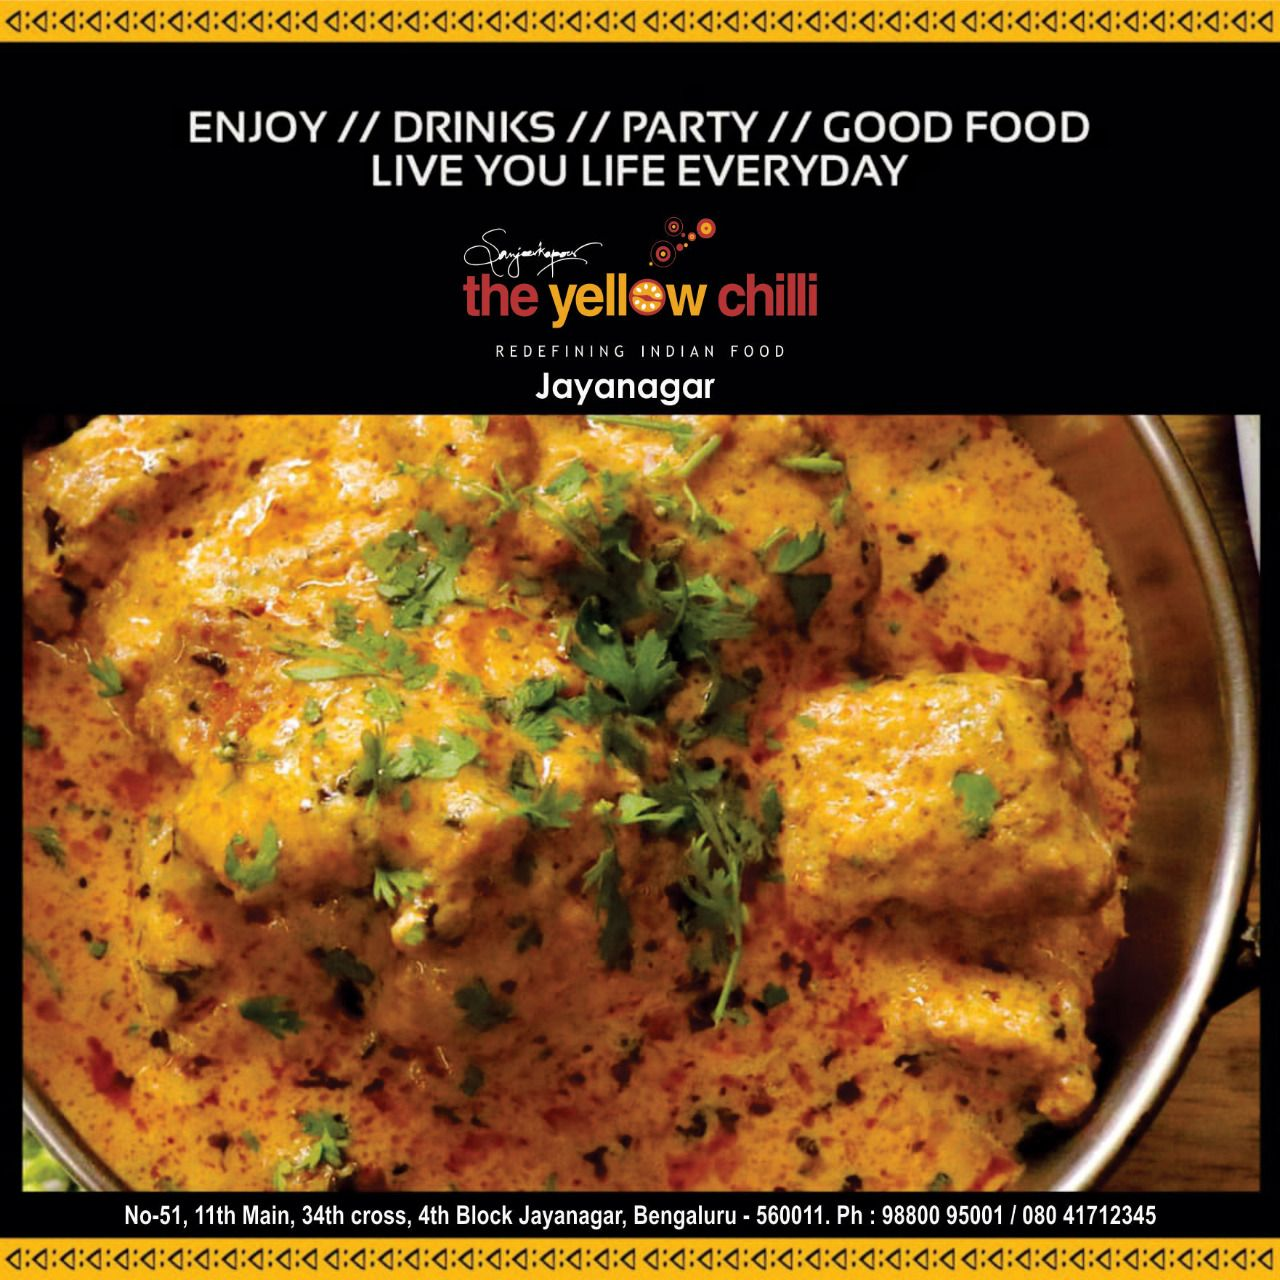 The Yellow Chilli Restaurant Indian Food Recipes Food Good Food